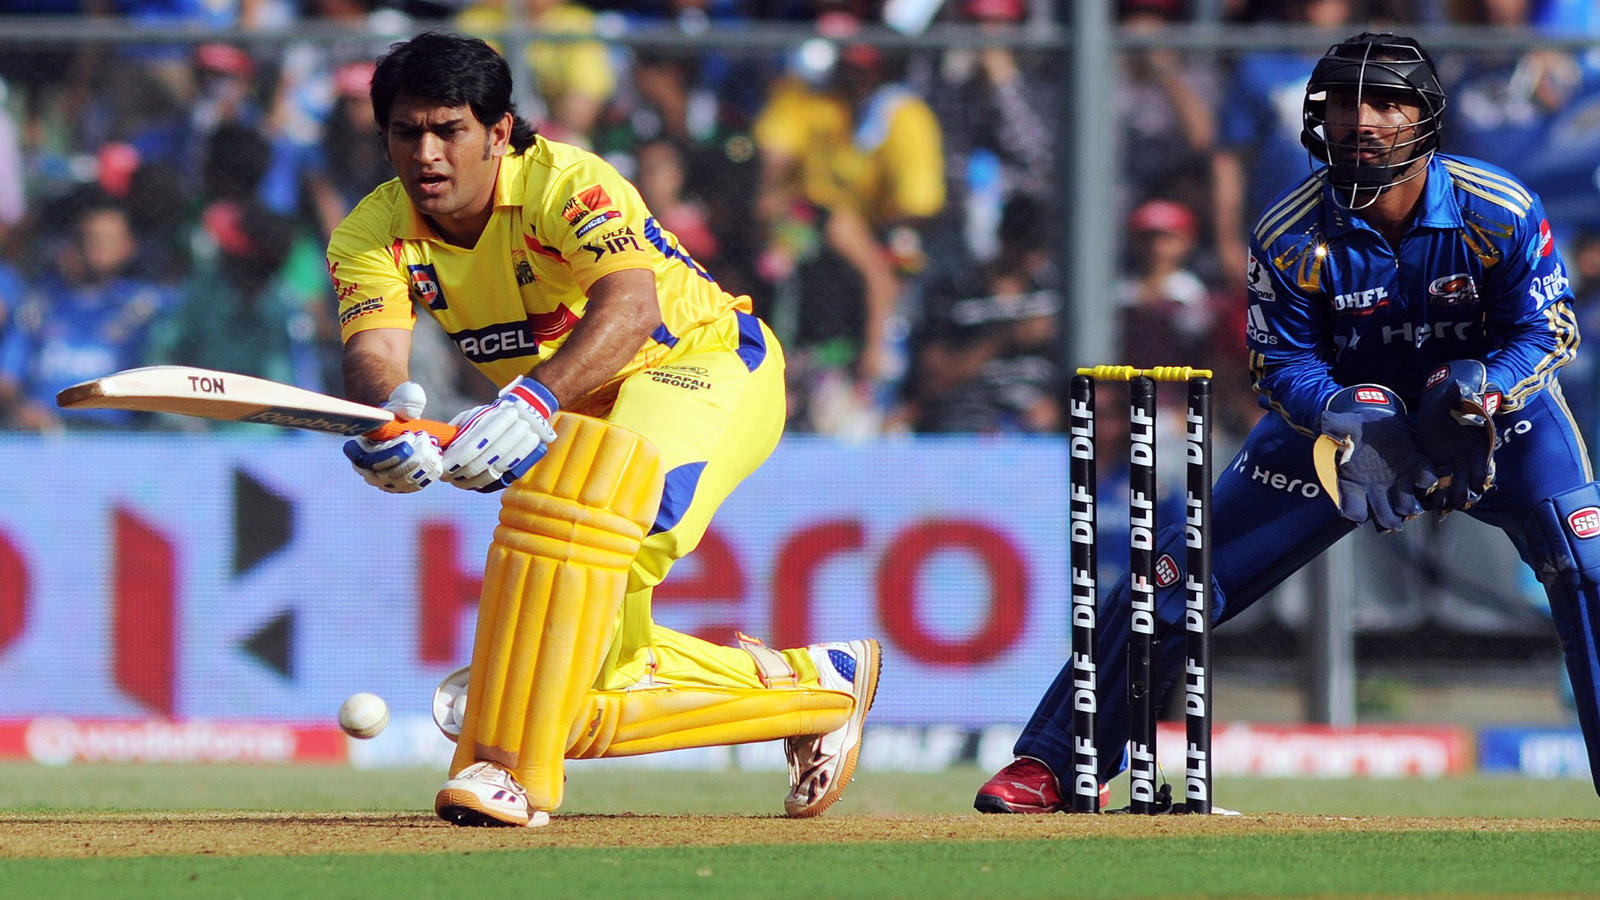 ipl-13-ms-dhoni-makes-record-100-wins-as-csk-skipper